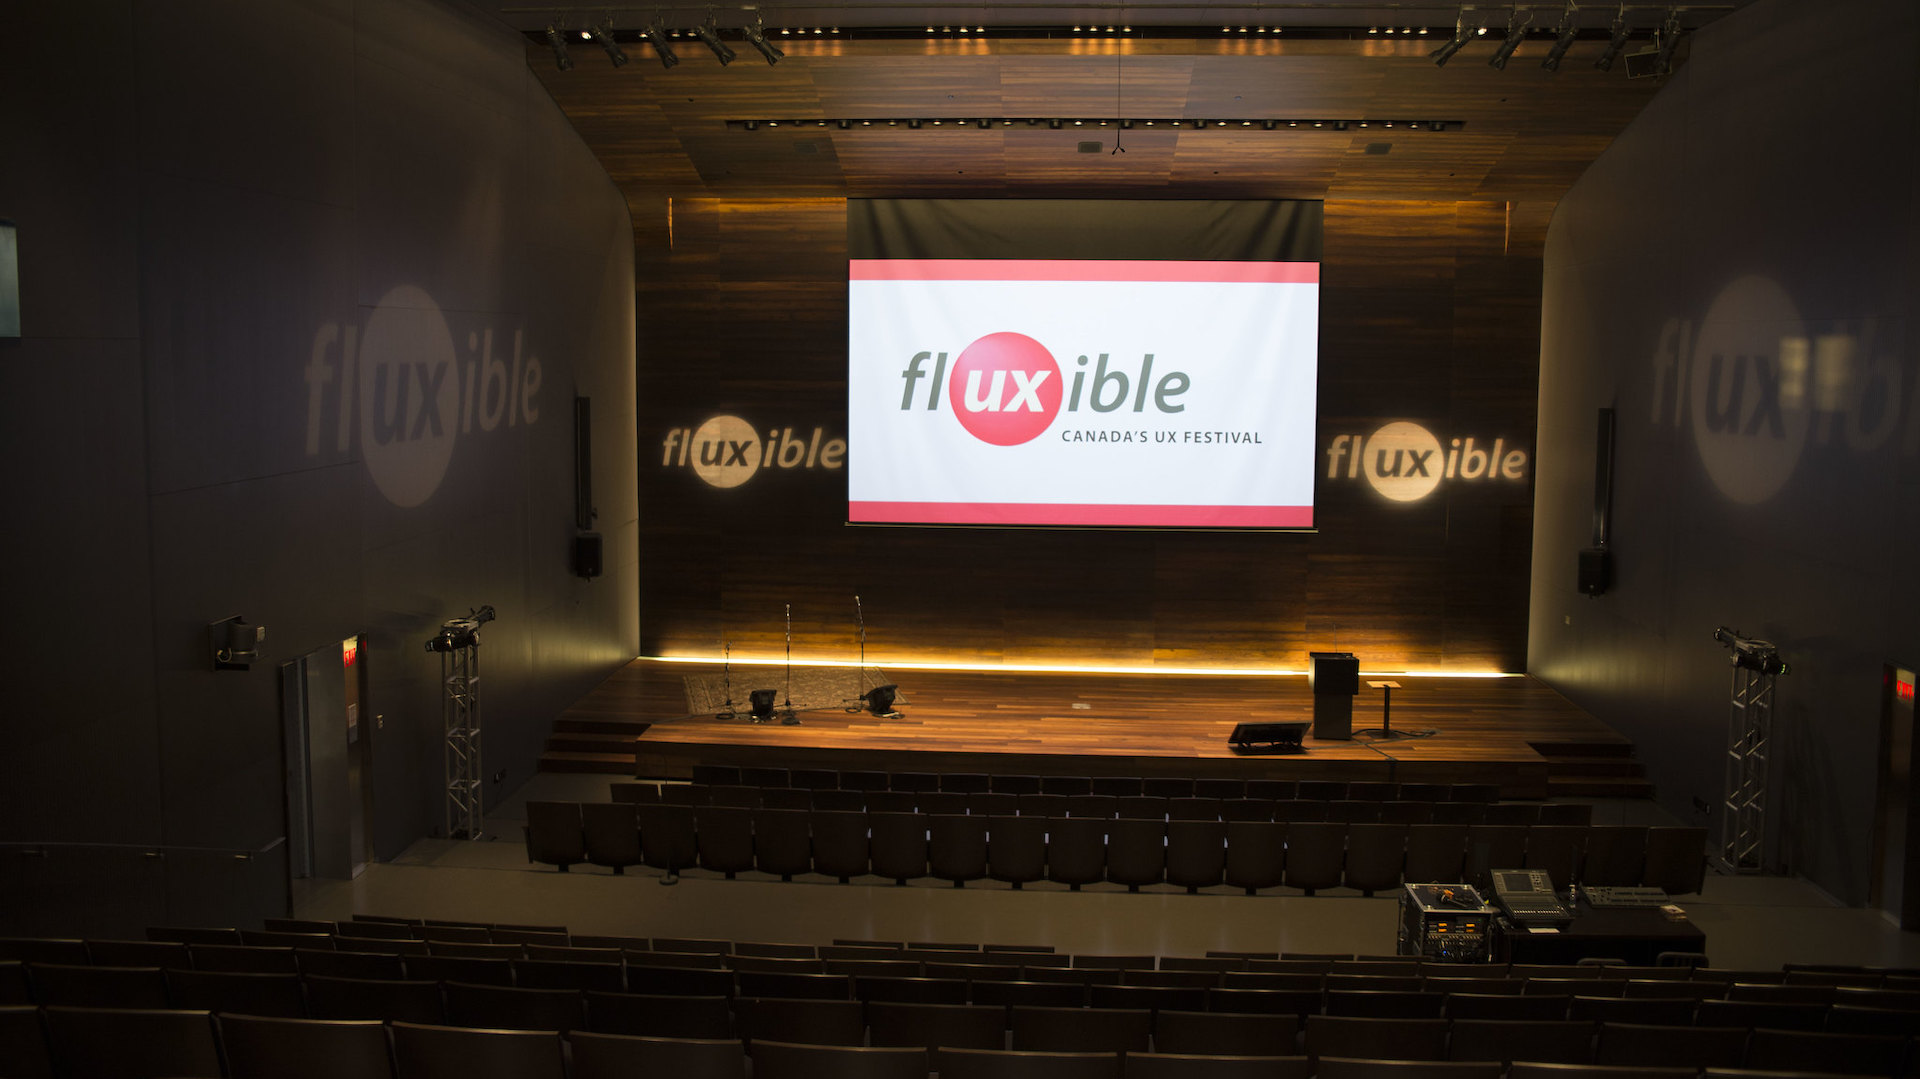 The Fluxible logo on a screen on above the stage in an empty theatre.